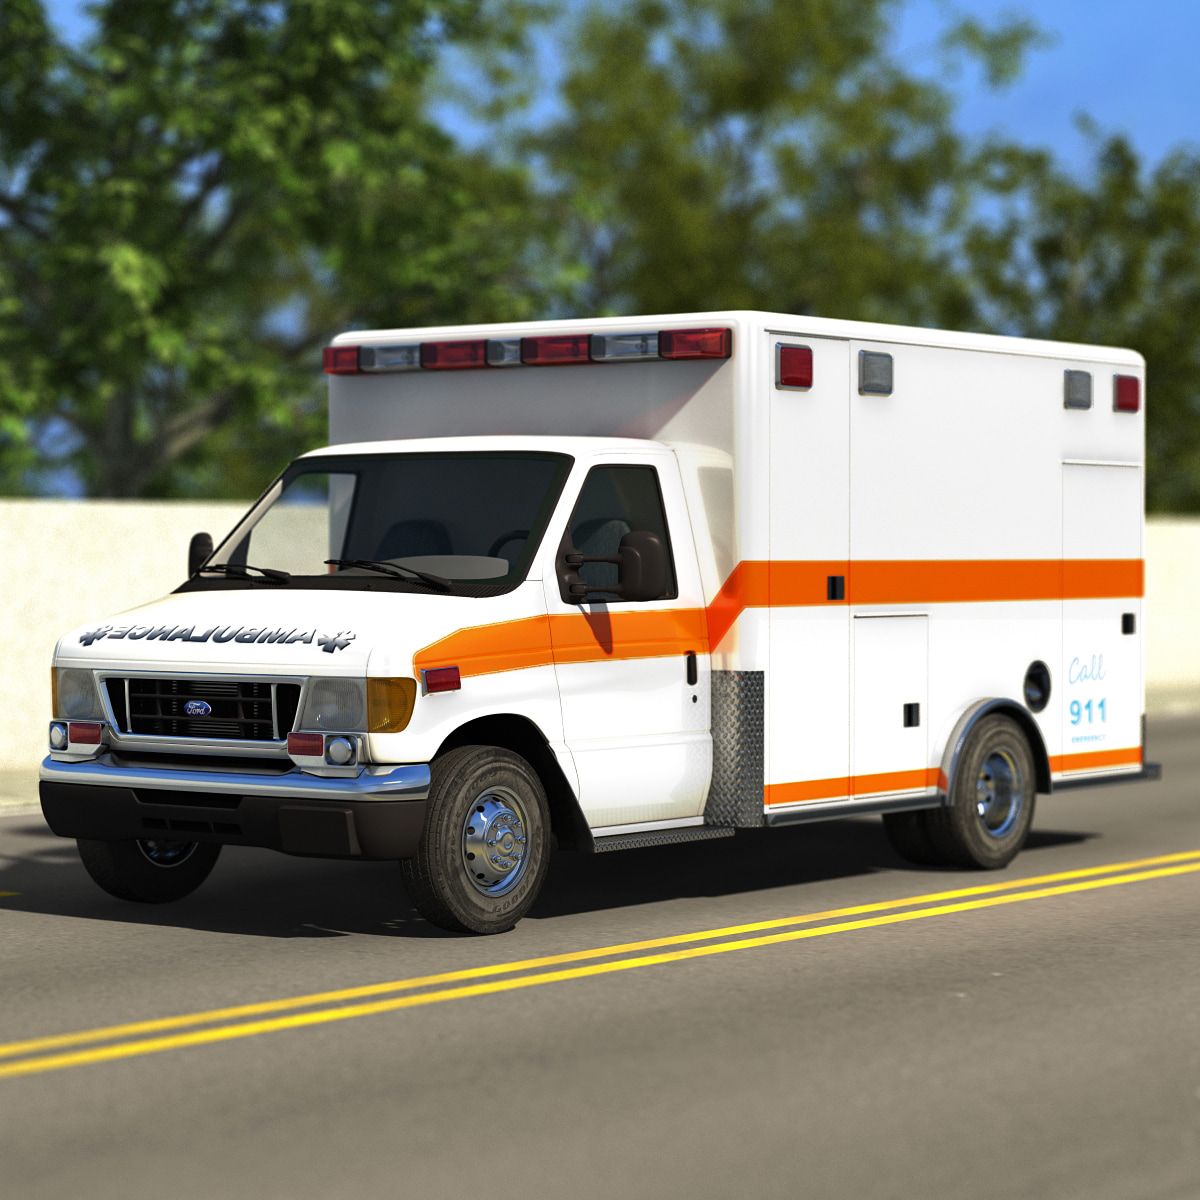 Ford_E350_Road_Rescue_Type_3_Ambulance_2005___0001_2.jpg